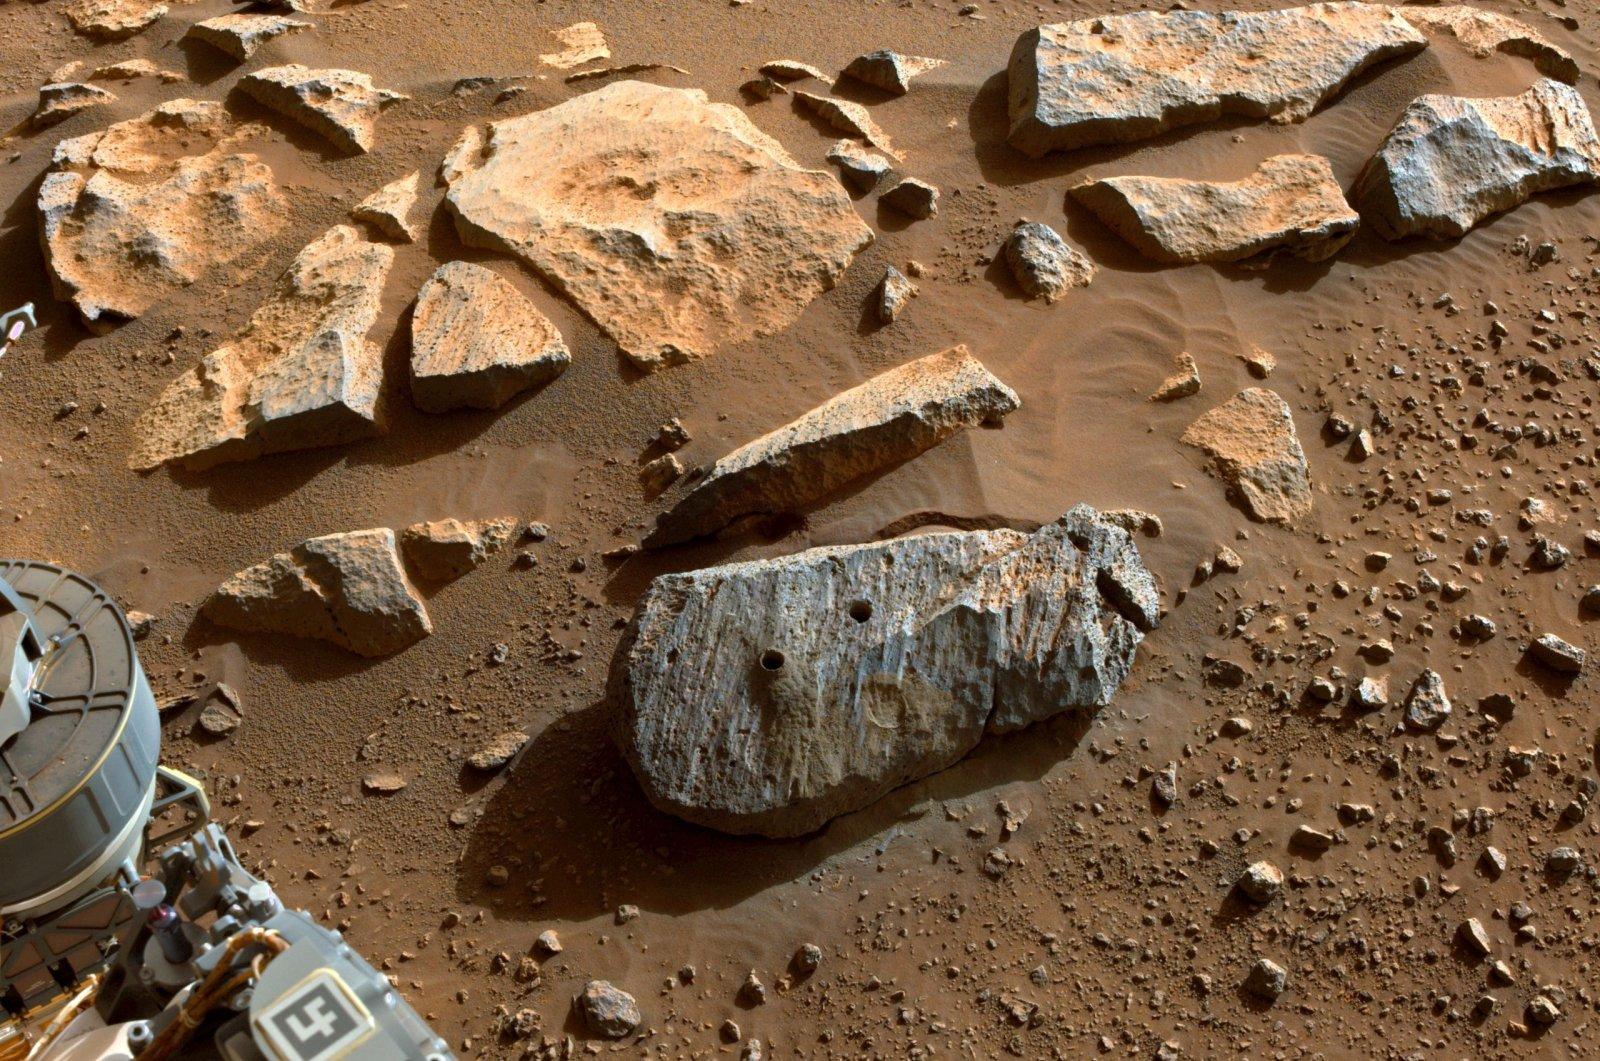 """Two holes where the Perseverance rover's drill obtained chalk-size samples from the rock nicknamed """"Rochette,"""" can be seen on Mars, Sept. 7, 2021. (NASA via AFP)"""